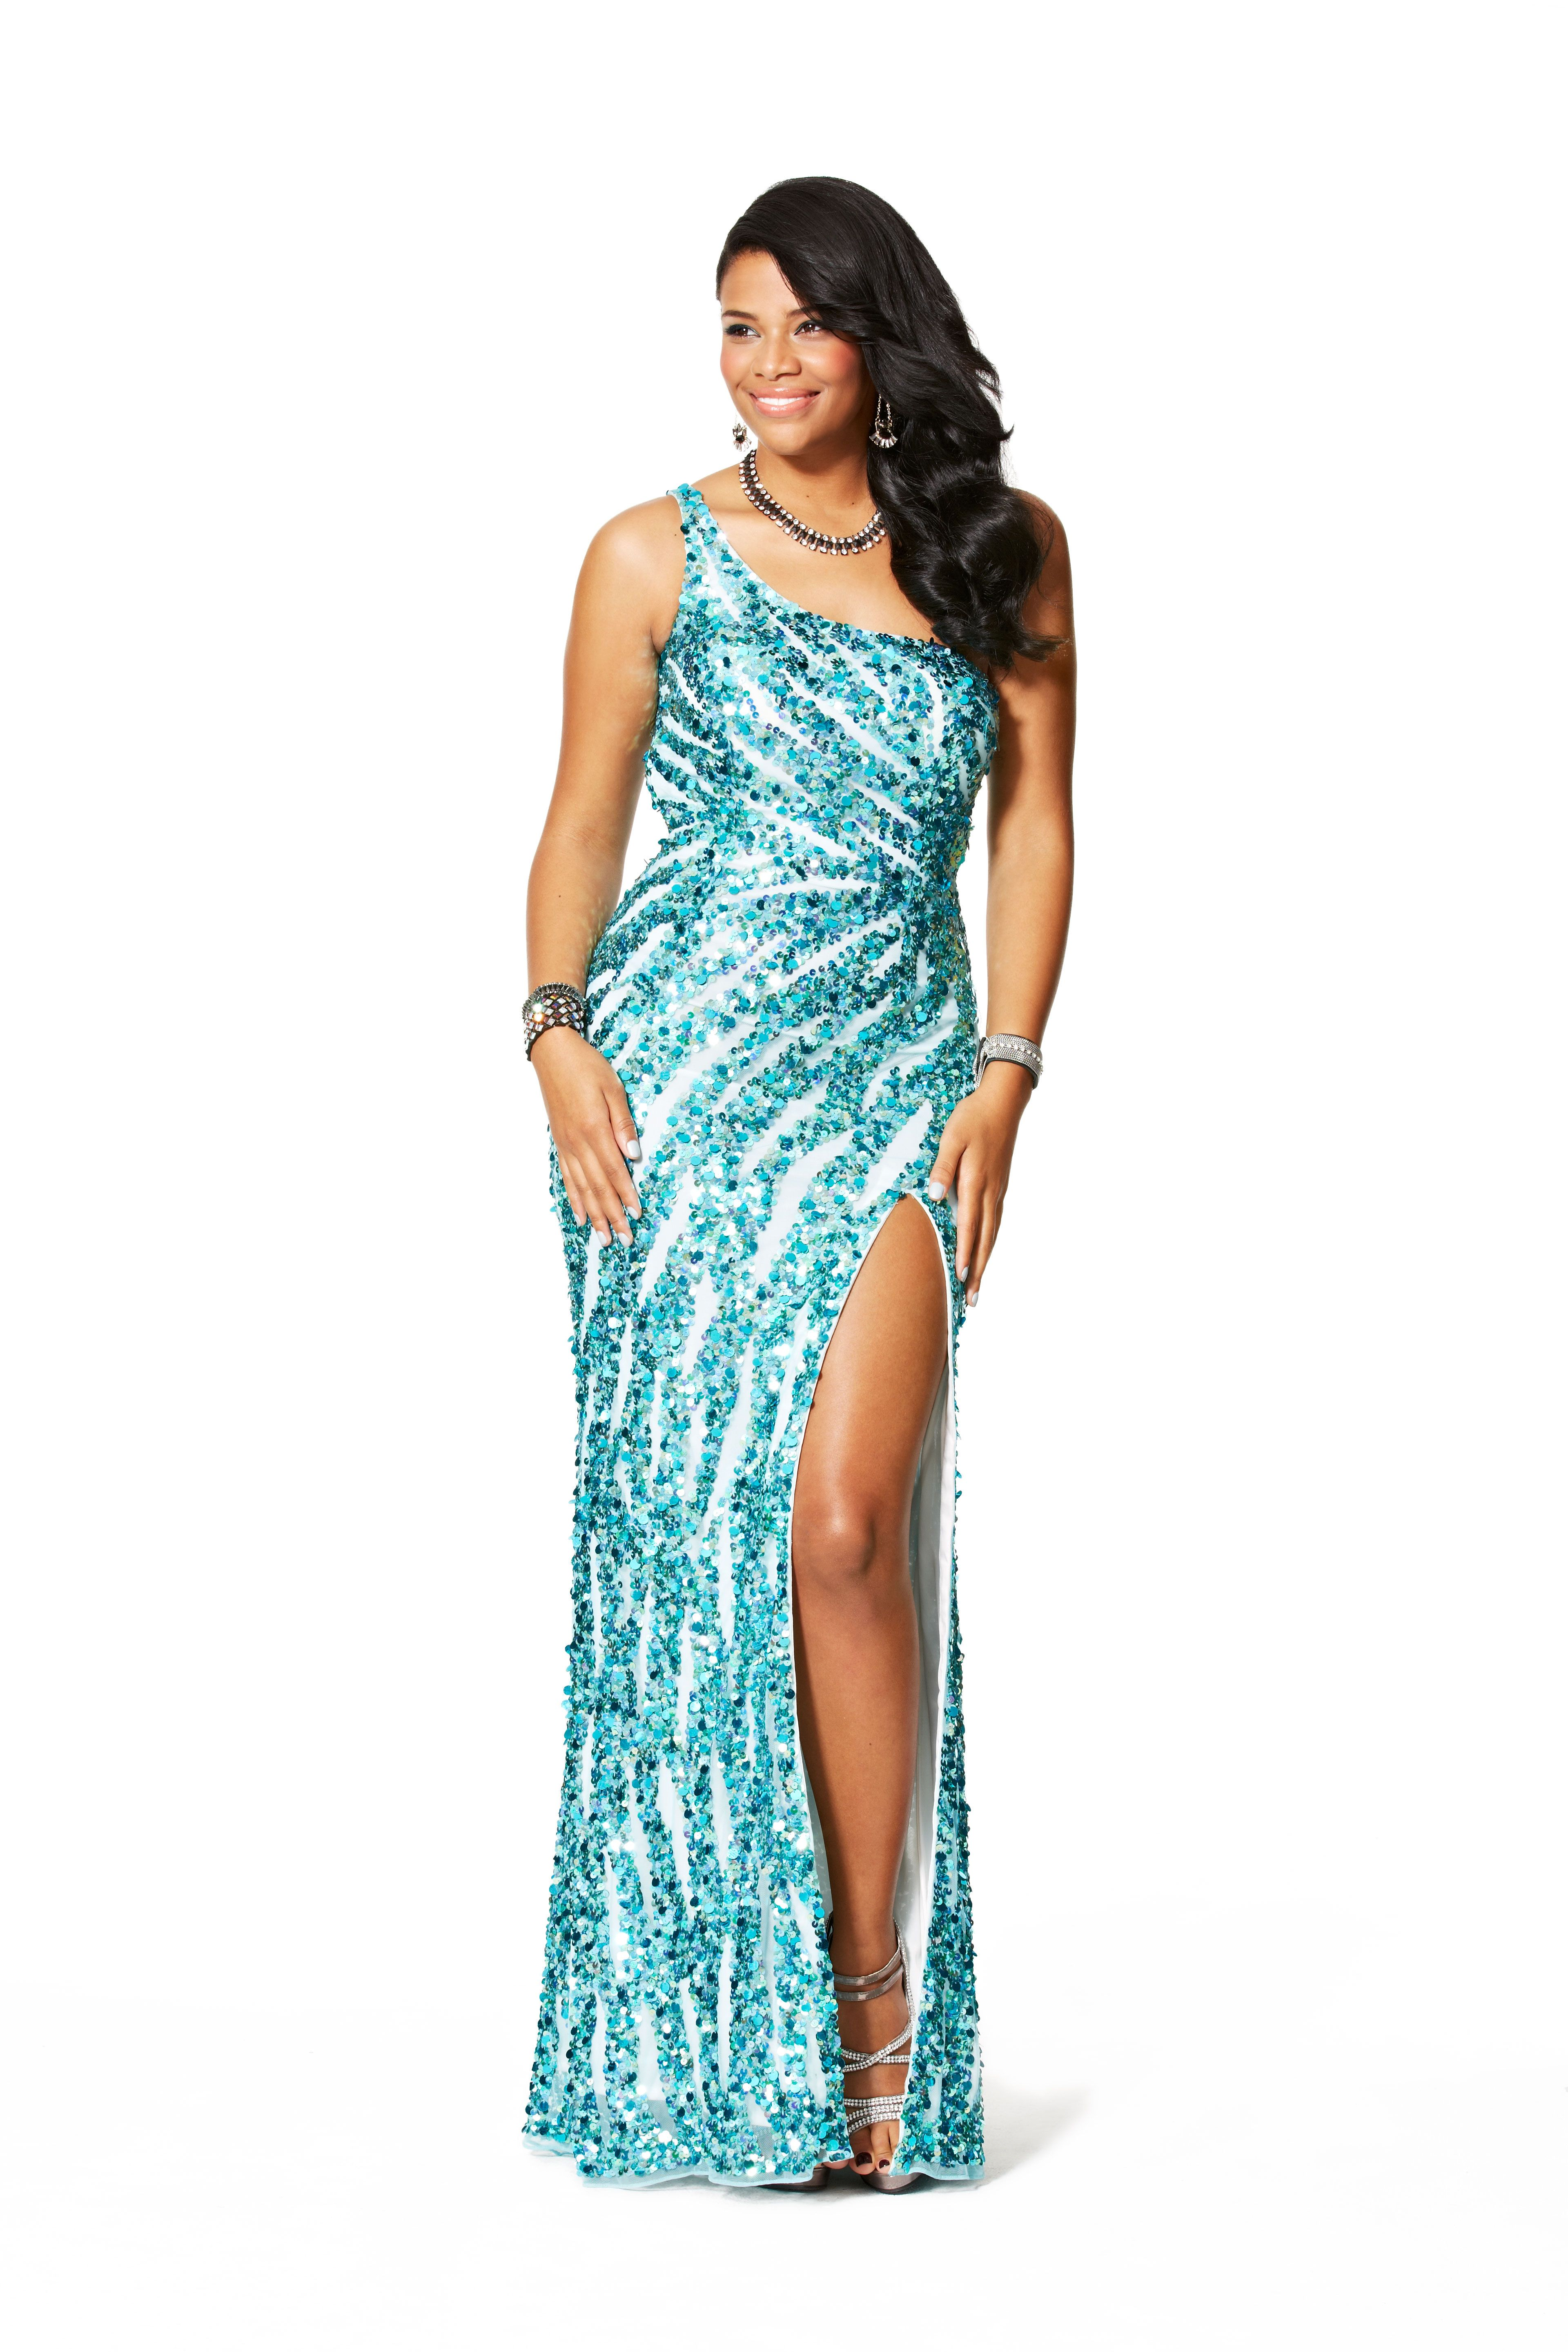 The Best Prom Dresses To Play Up Your Gorgeous Shape | Prom ...